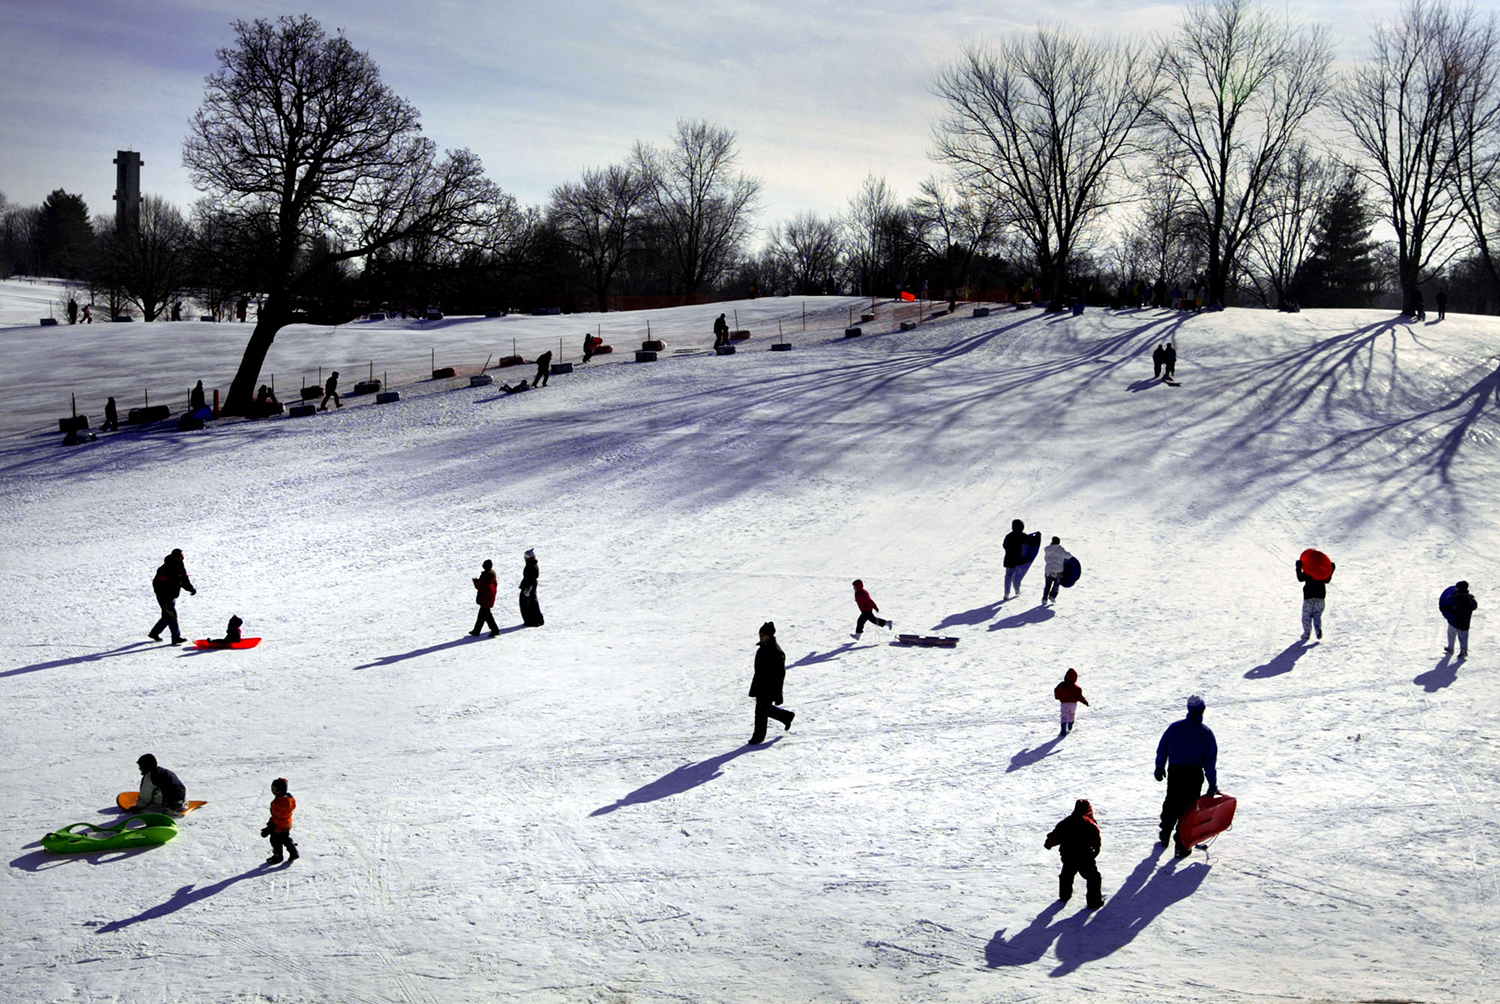 Pasfield Park Golf Course. Michael Brown/The State Journal-Register